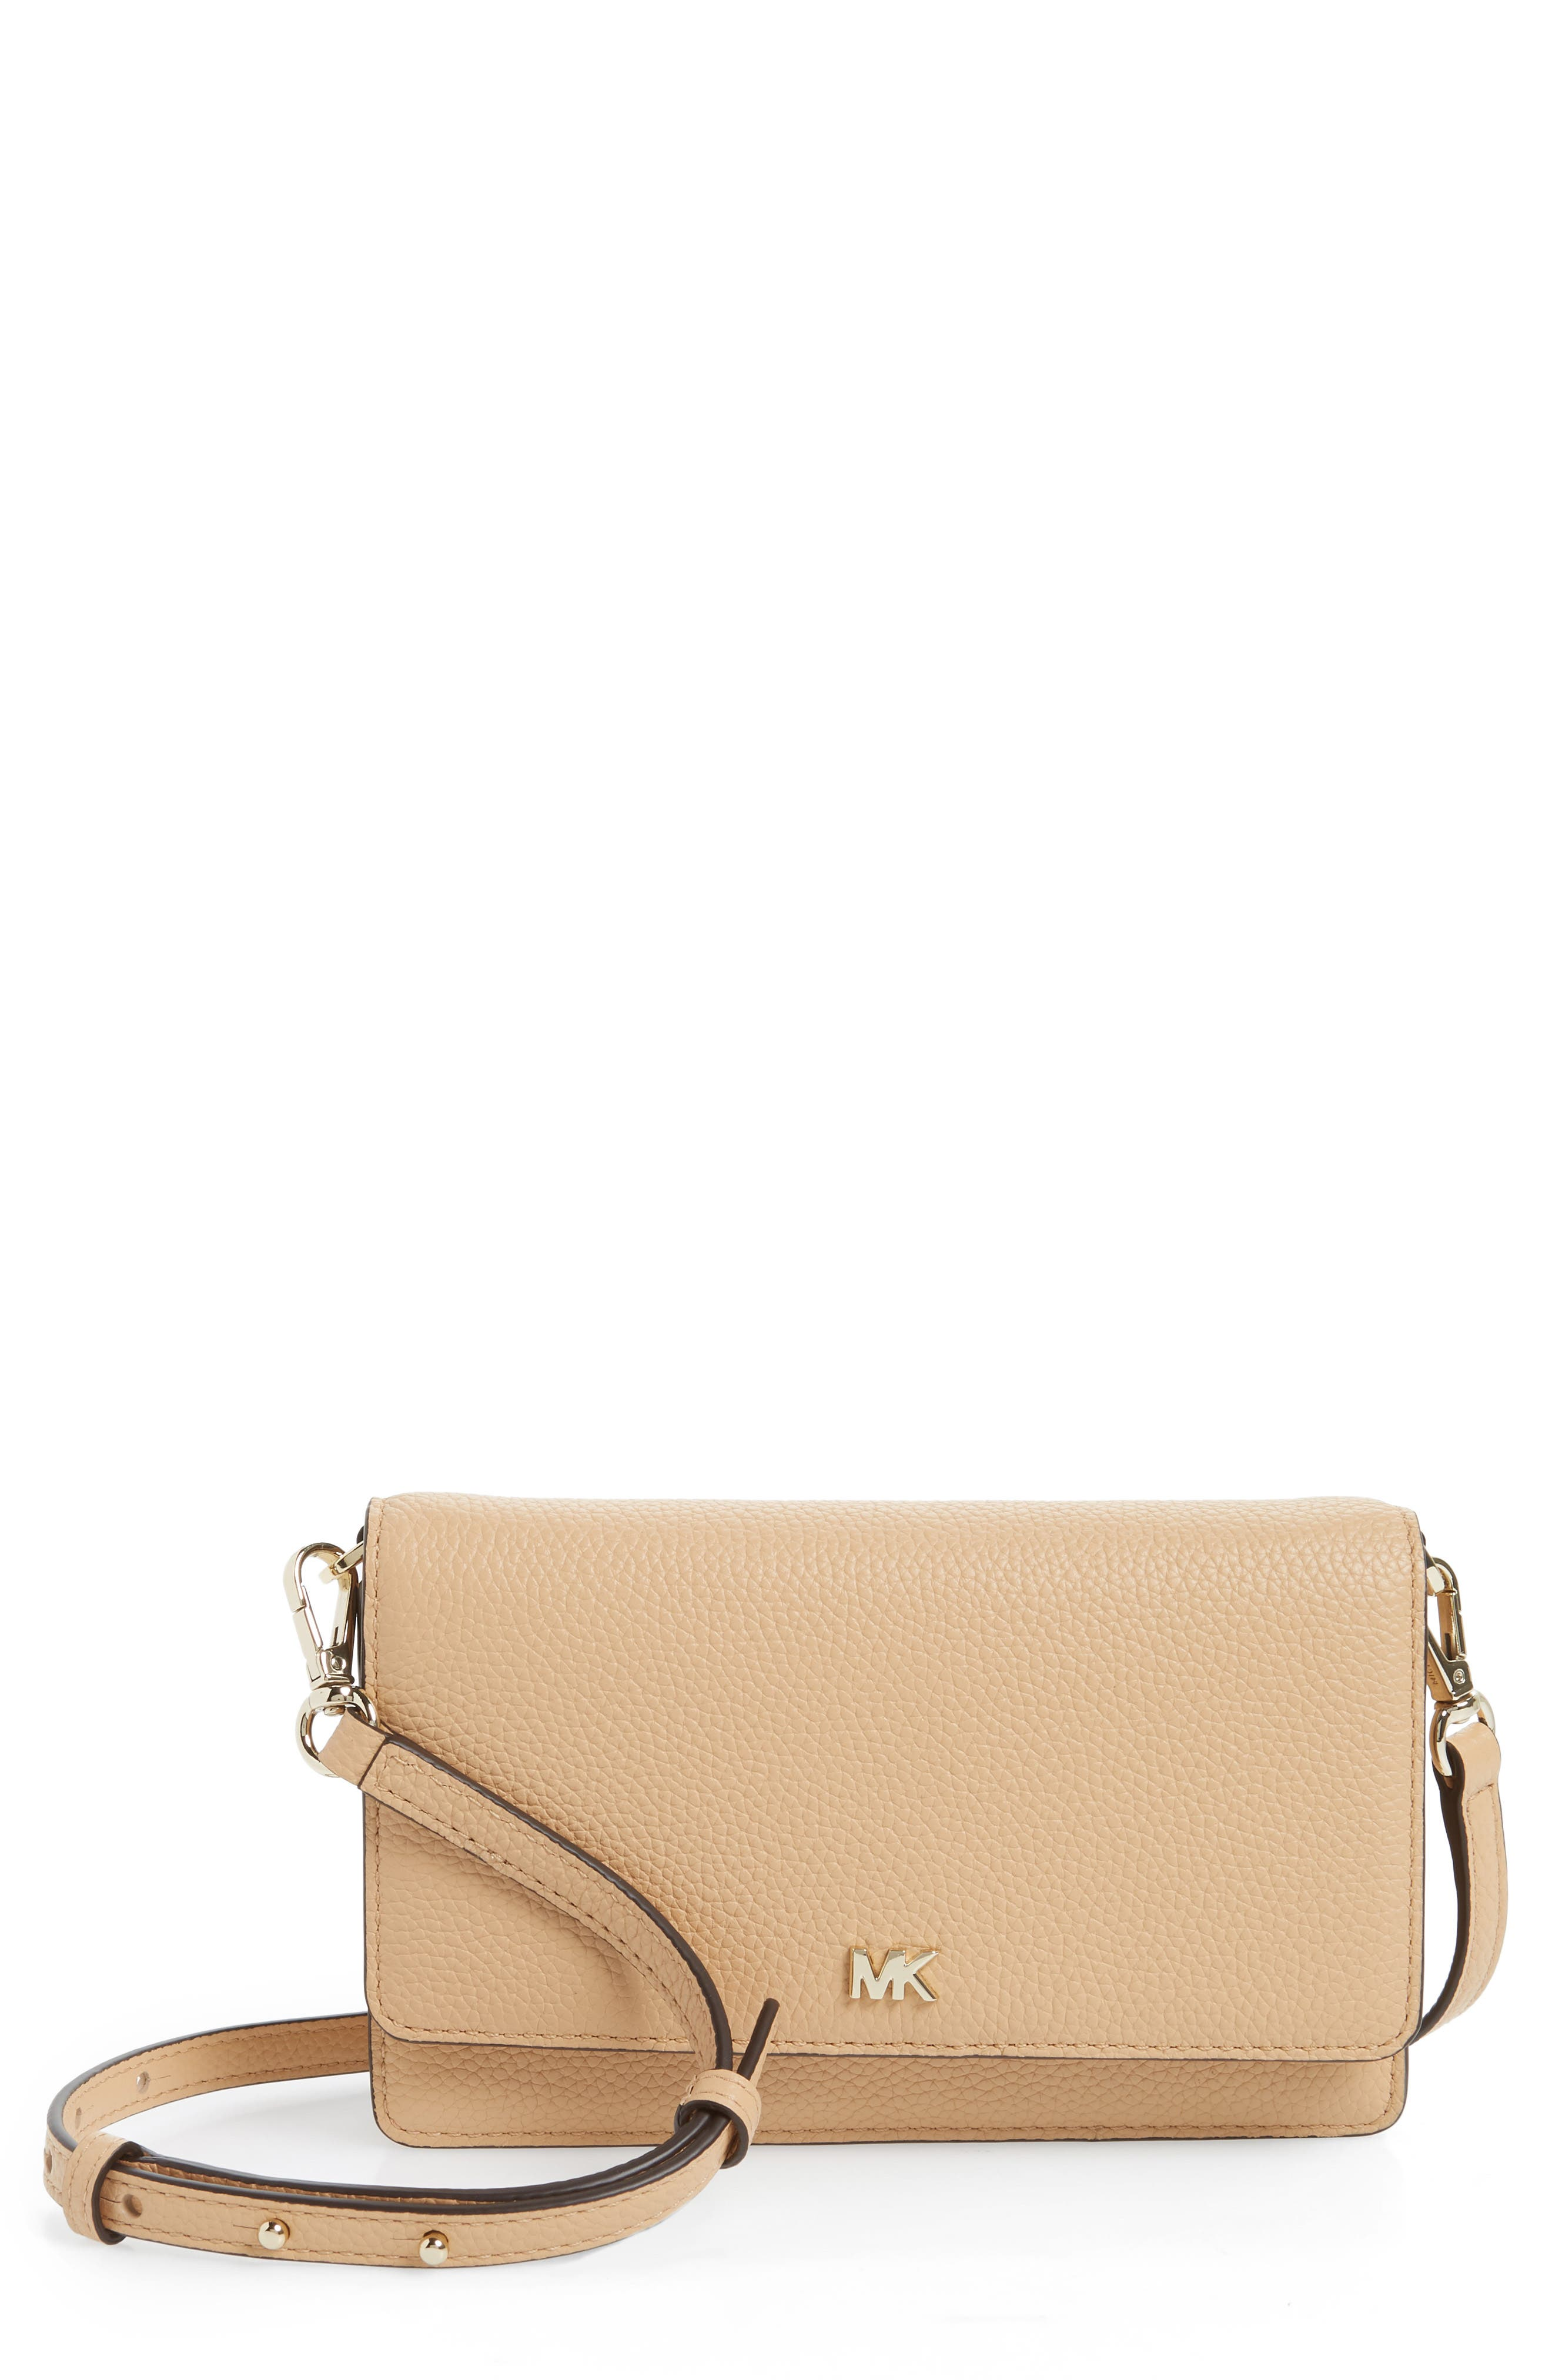 Leather Crossbody Phone Wallet,                             Main thumbnail 1, color,                             250